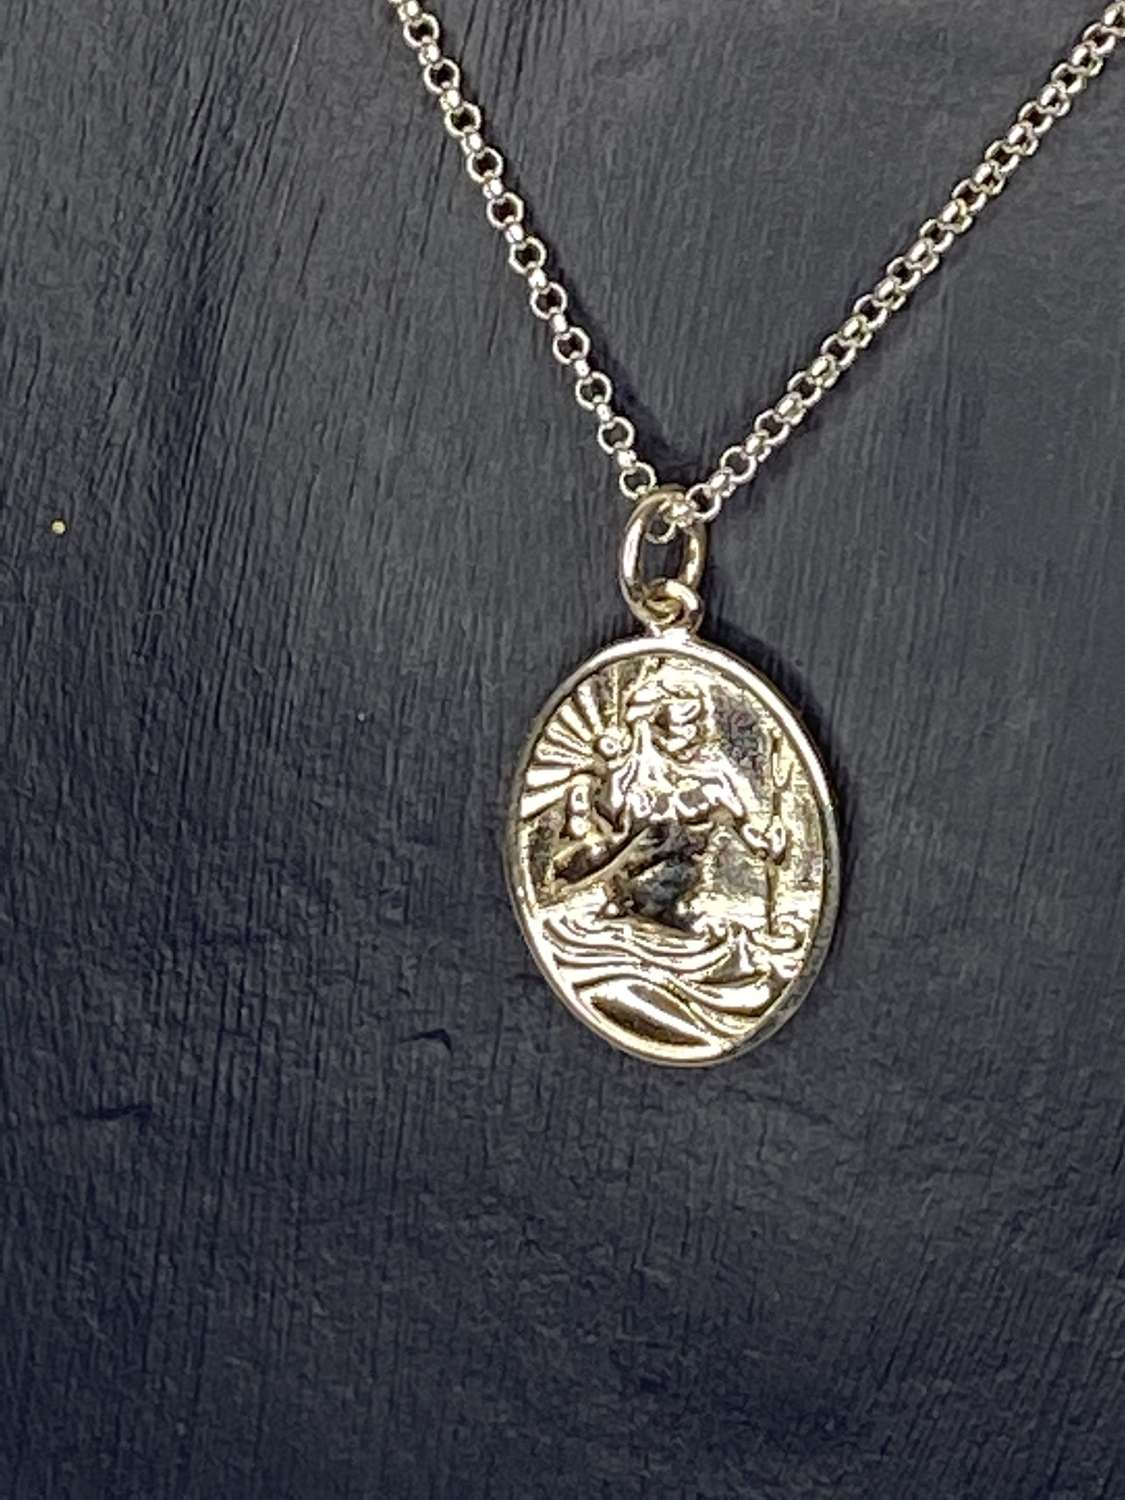 Stirling silver necklace - St Christopher pendant